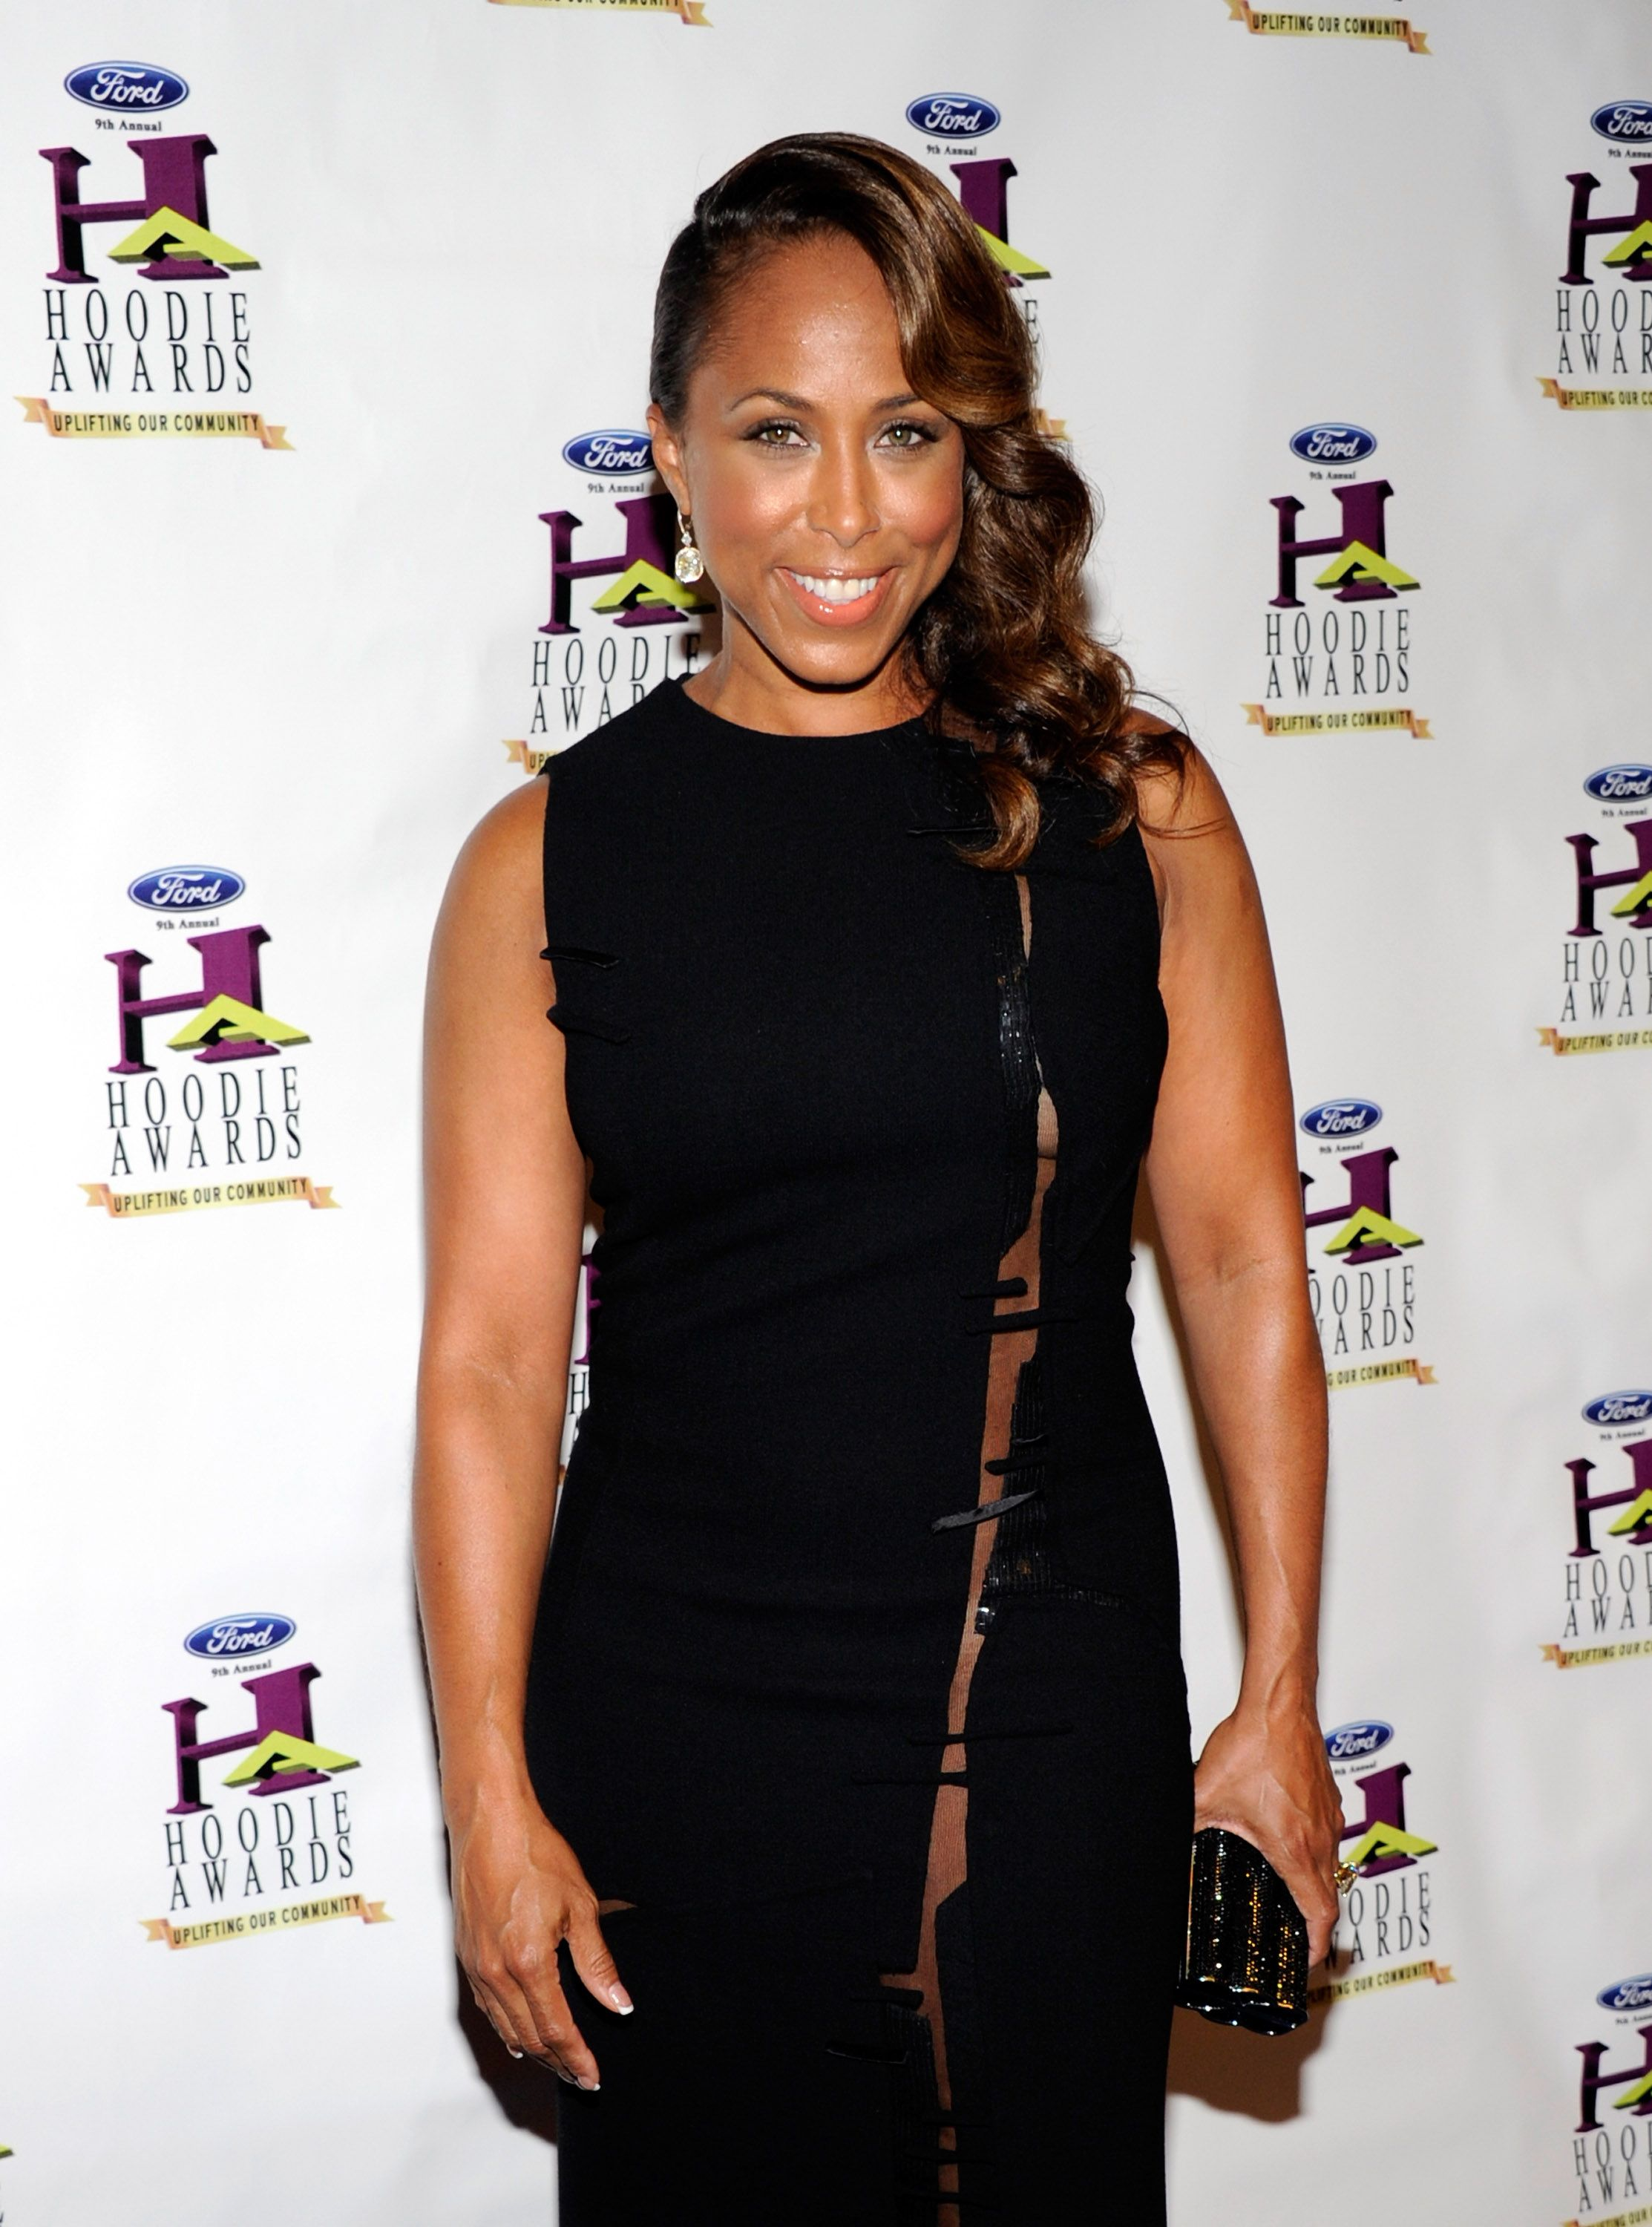 Marjorie Harvey during the 9th annual Ford Hoodie Awards at the Mandalay Bay Events Center August 13, 2011 in Las Vegas, Nevada.   Source: Getty Images